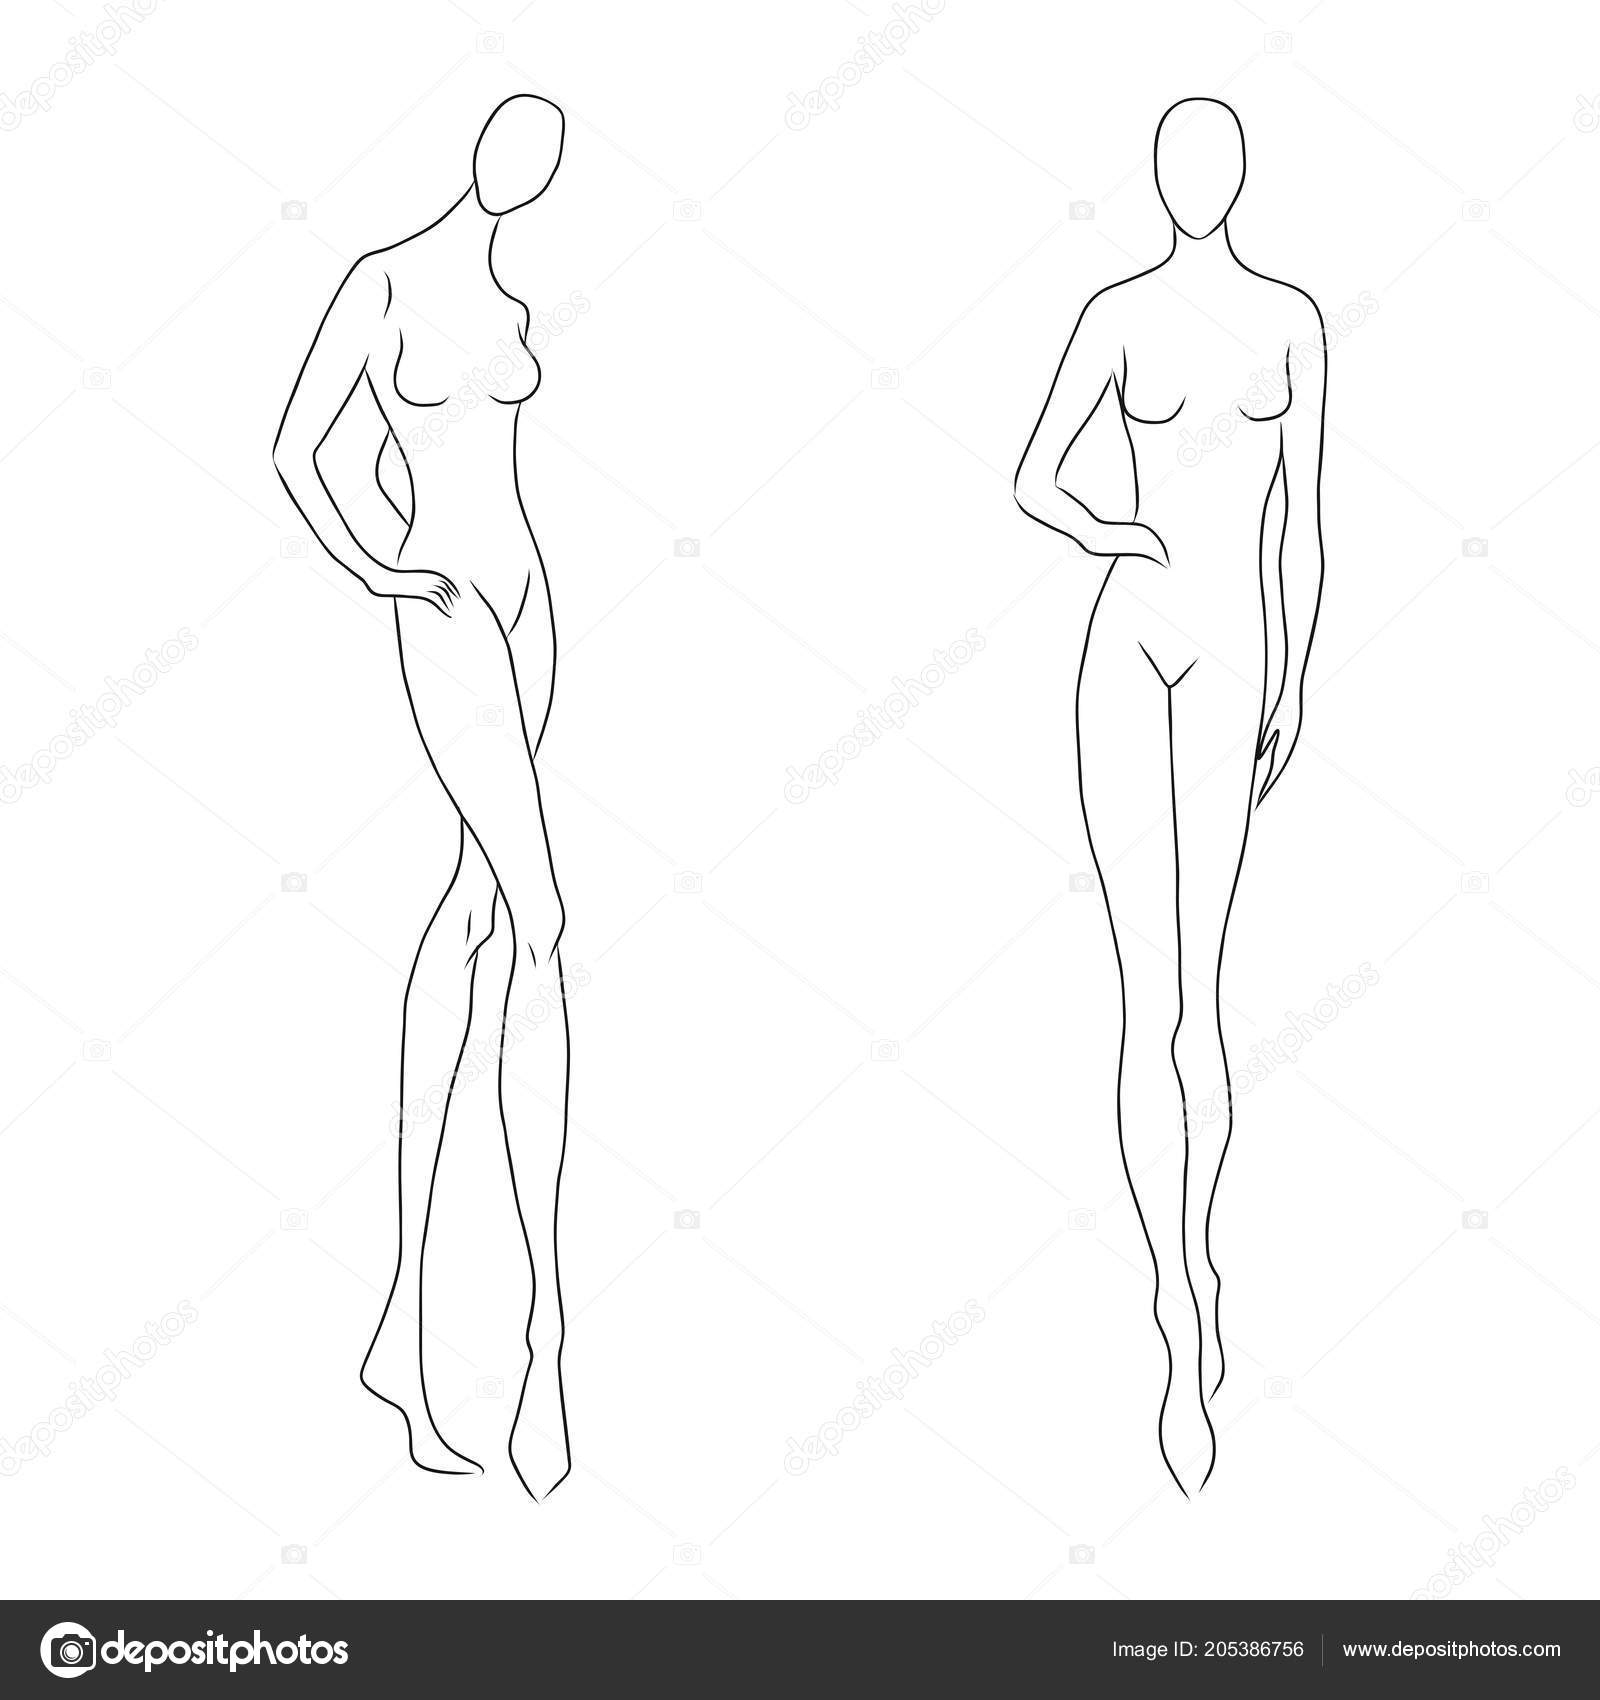 Drawing Models For Fashion Design Womens Figure Sketch Different Poses Template For Drawing For Designers Of Clothes Nd Constructors Vector Outline Girl Model Template For Fashion Sketching Fashion Illustration Stock